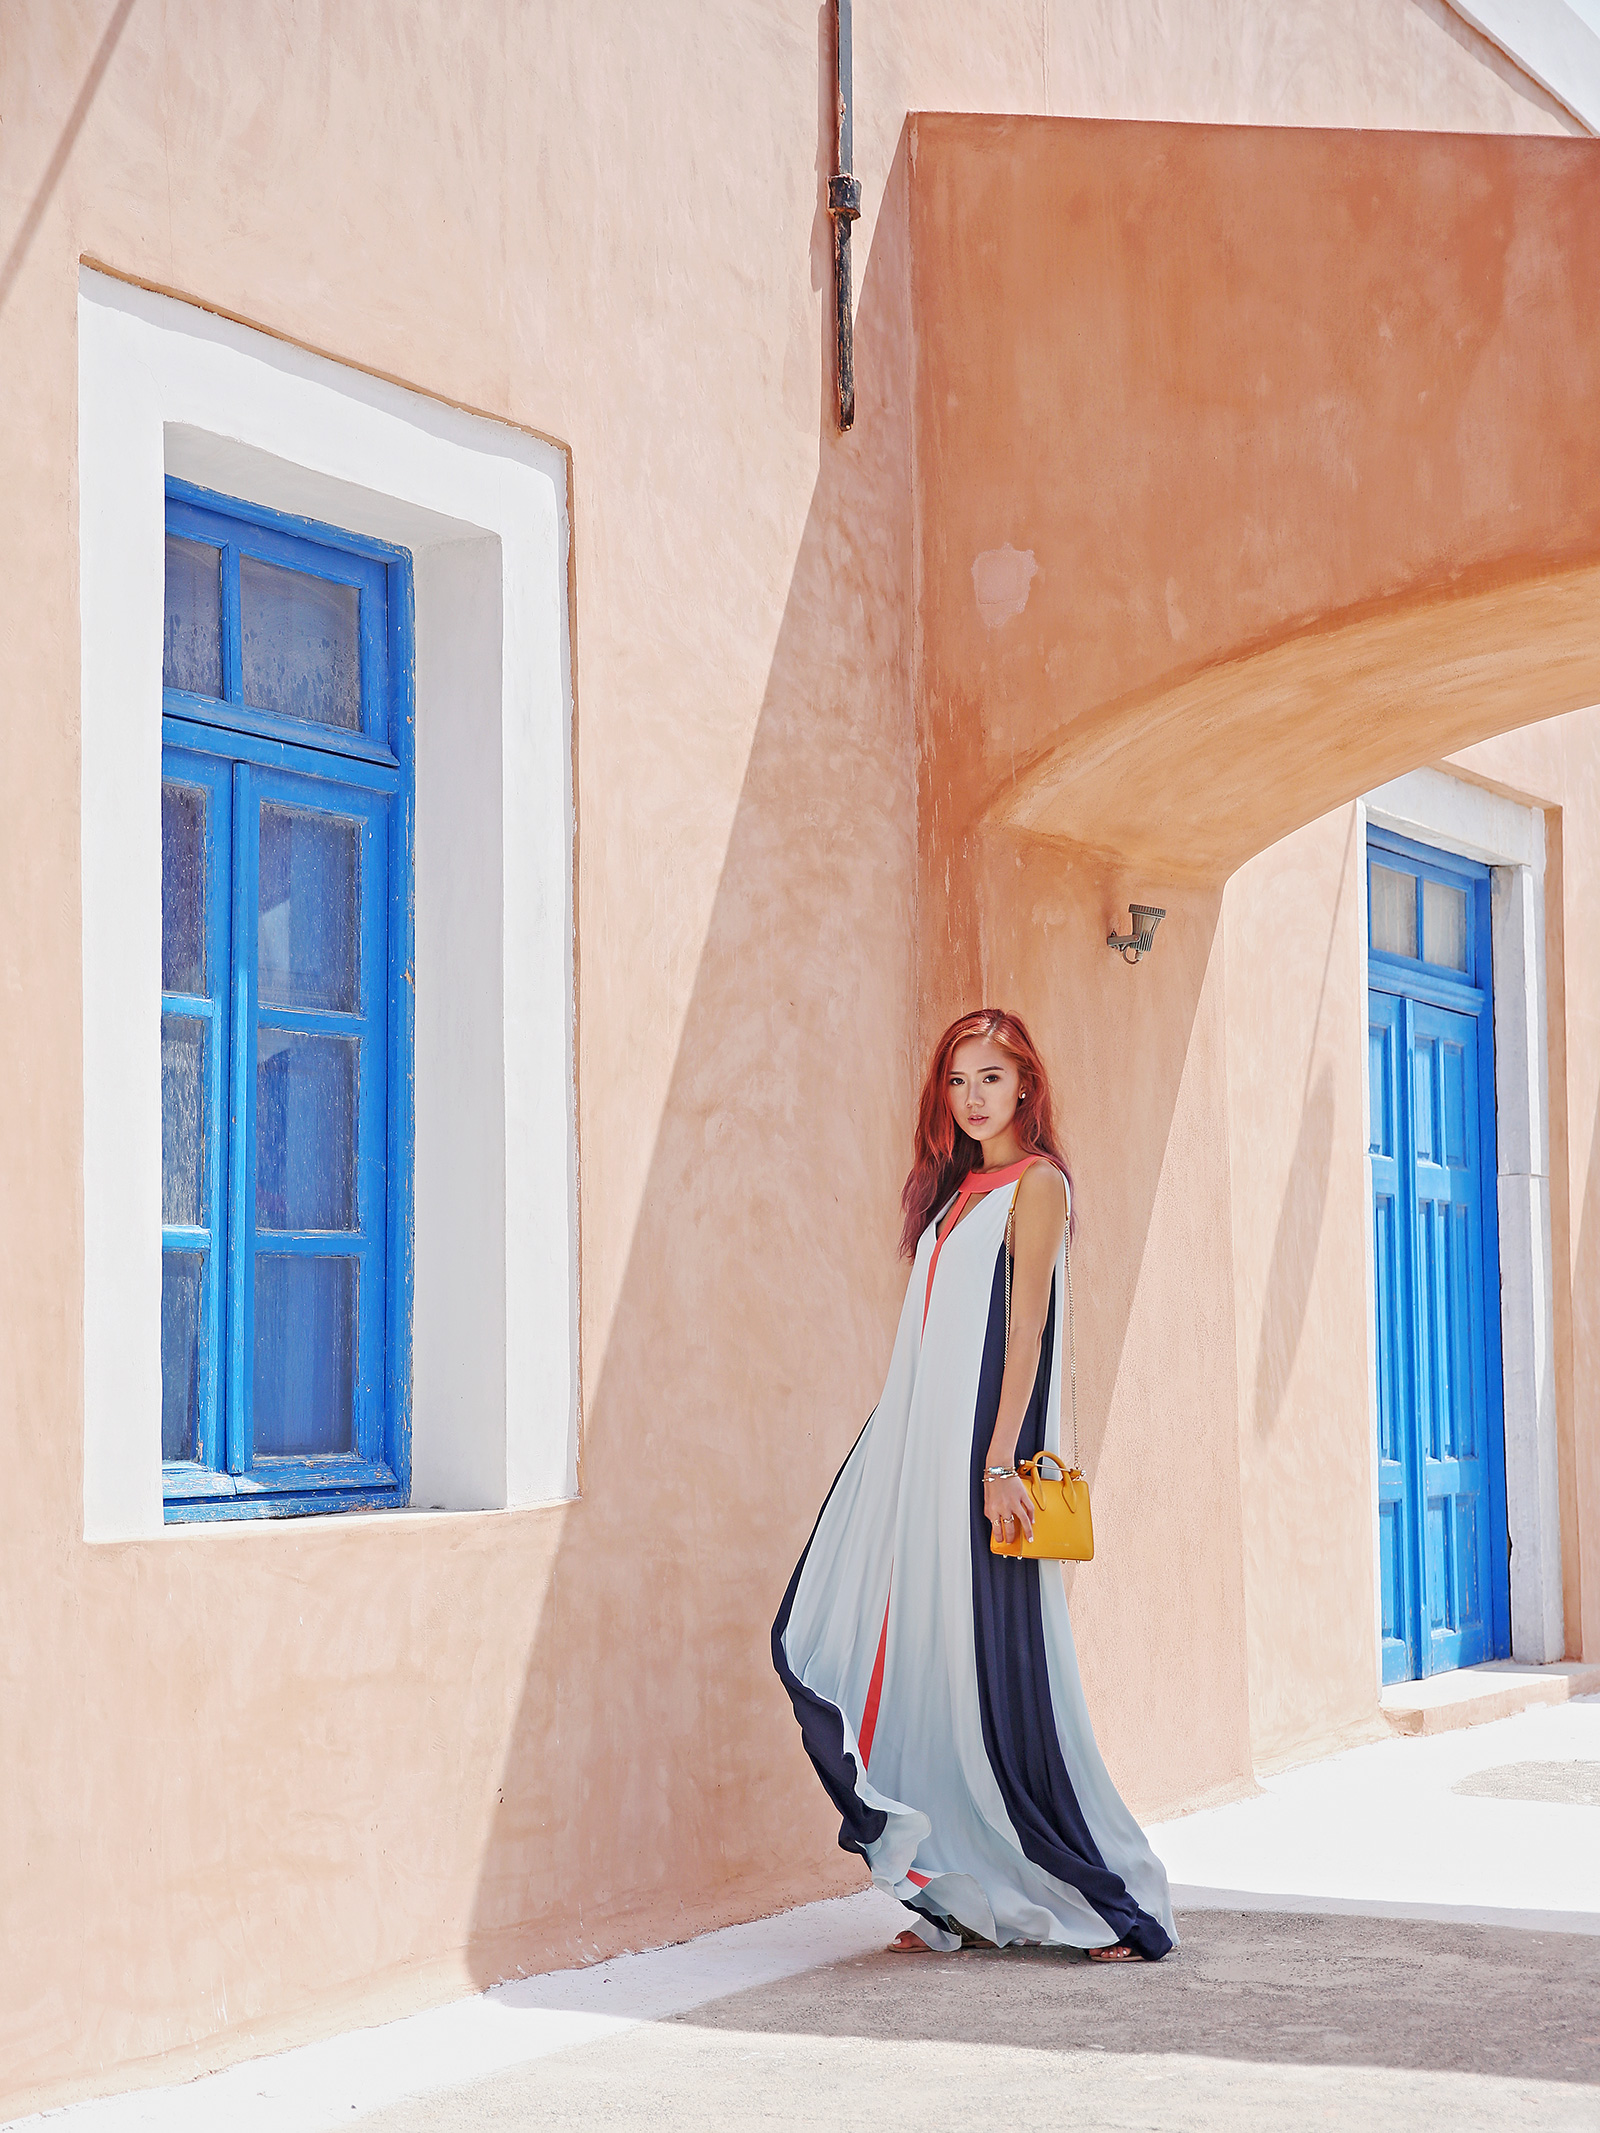 BCBG dress, Strathberry bag in Oia, Santorini | www.itscamilleco.com